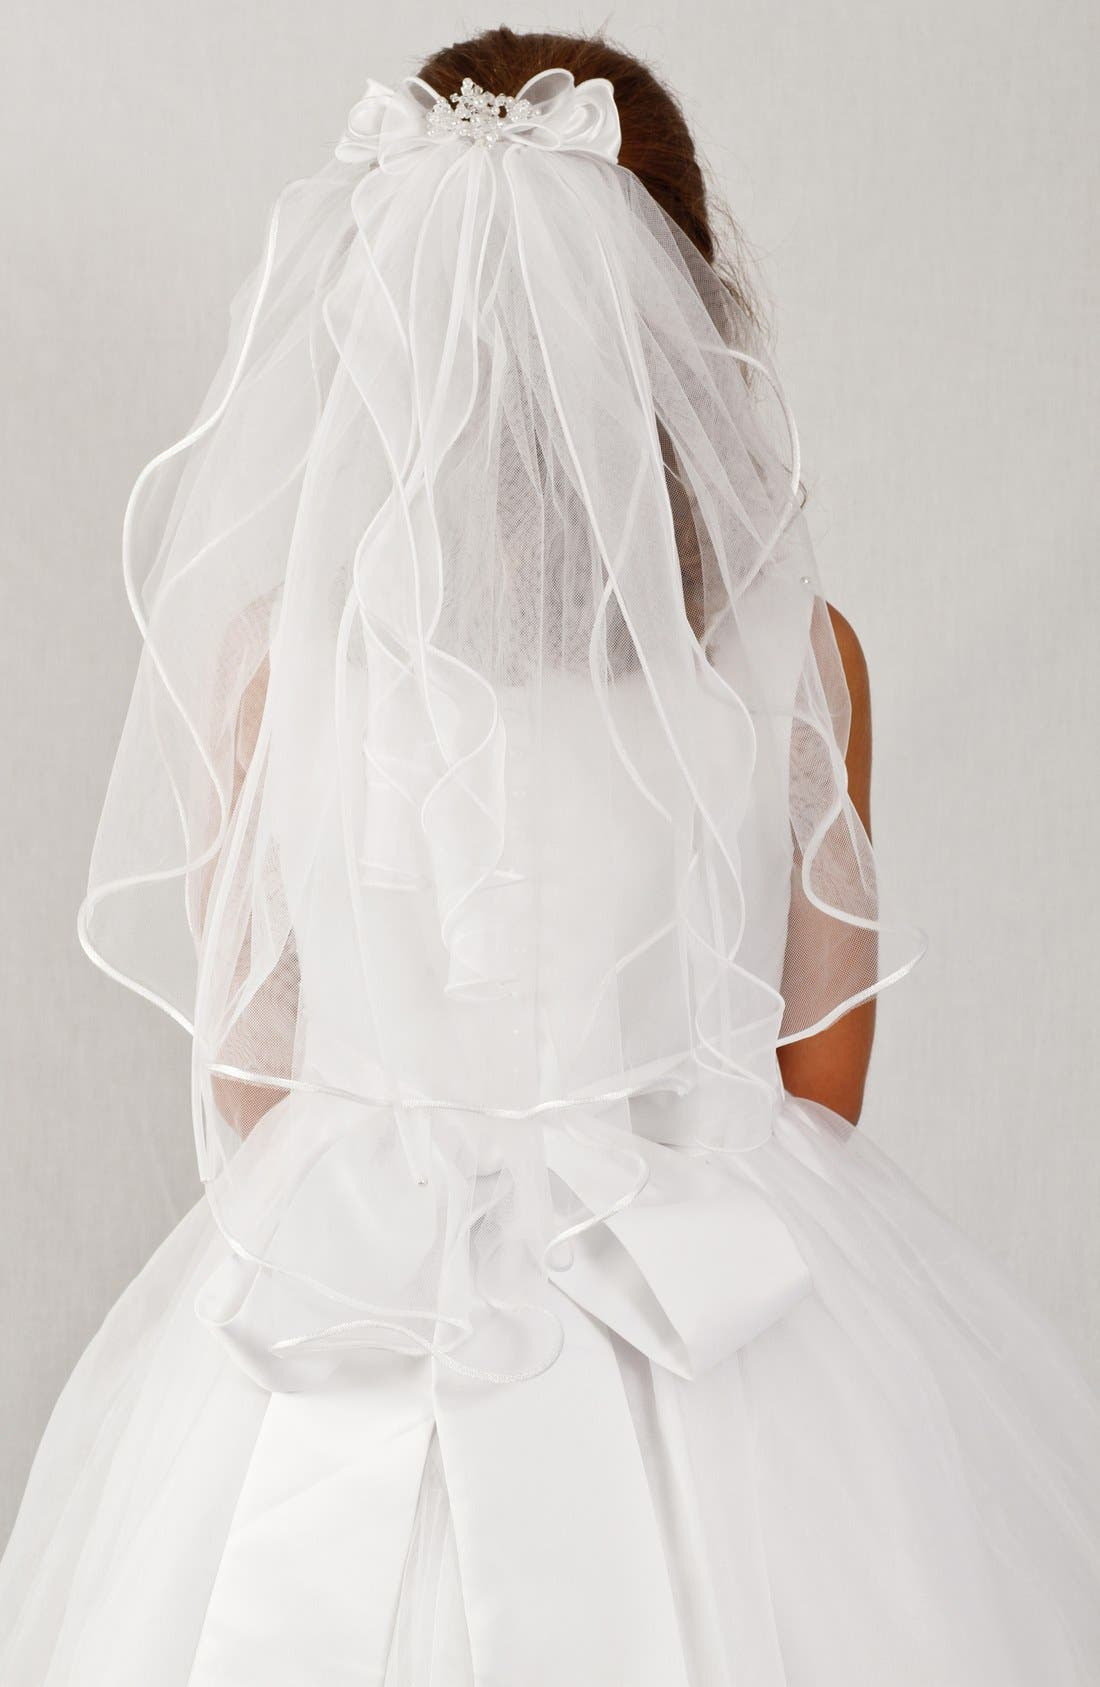 Alternate Image 1 Selected - Lauren Marie Organza Bow Veil (Girls)